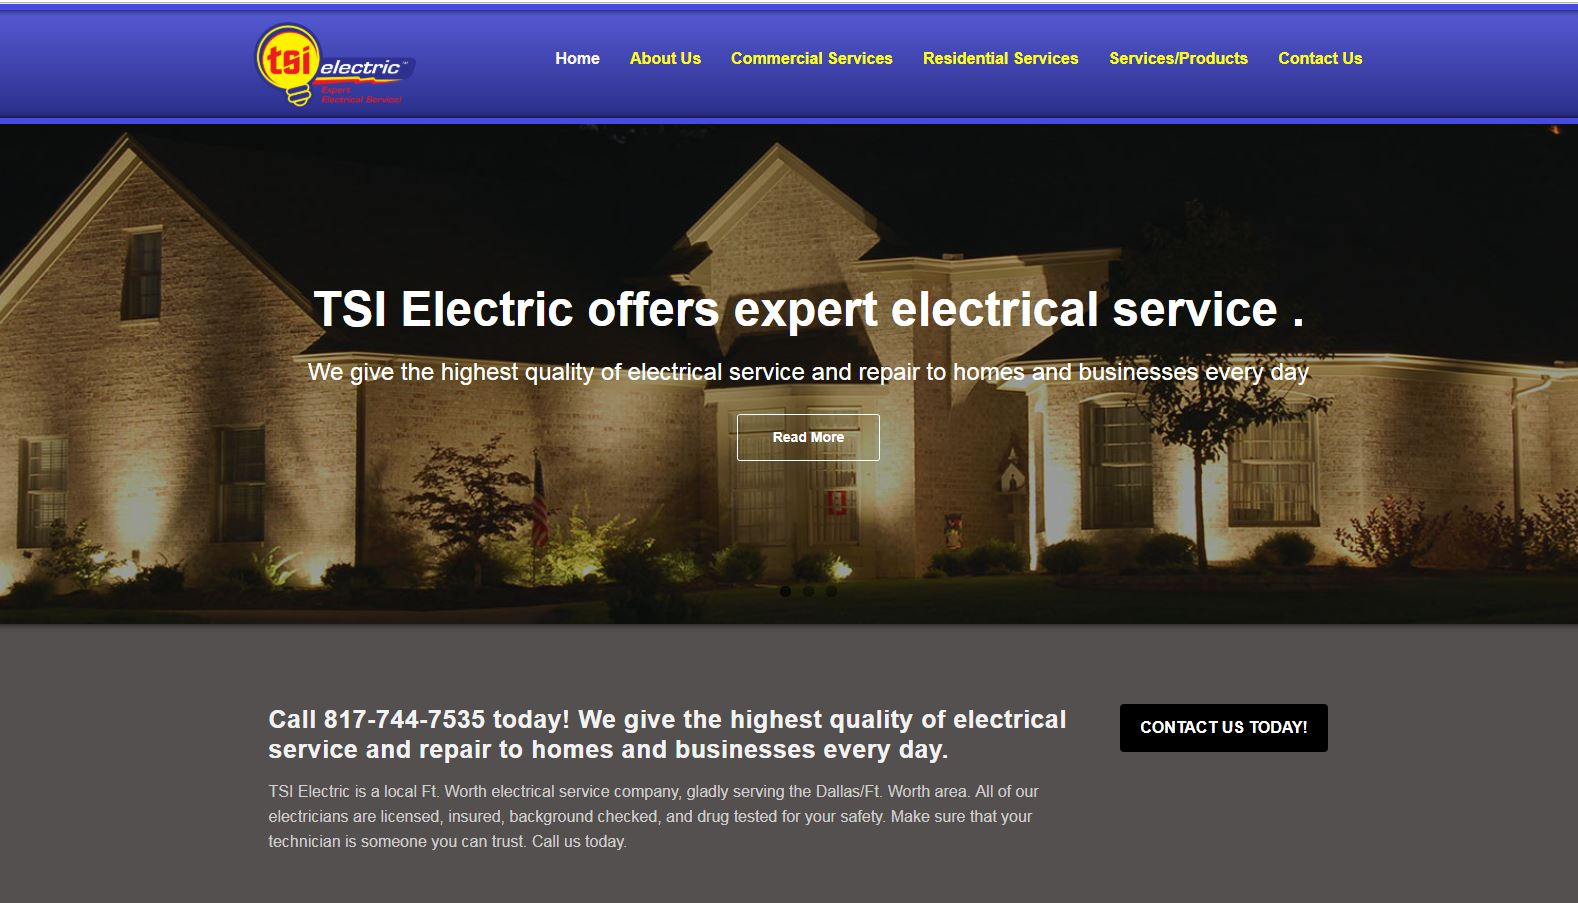 TSI Electric